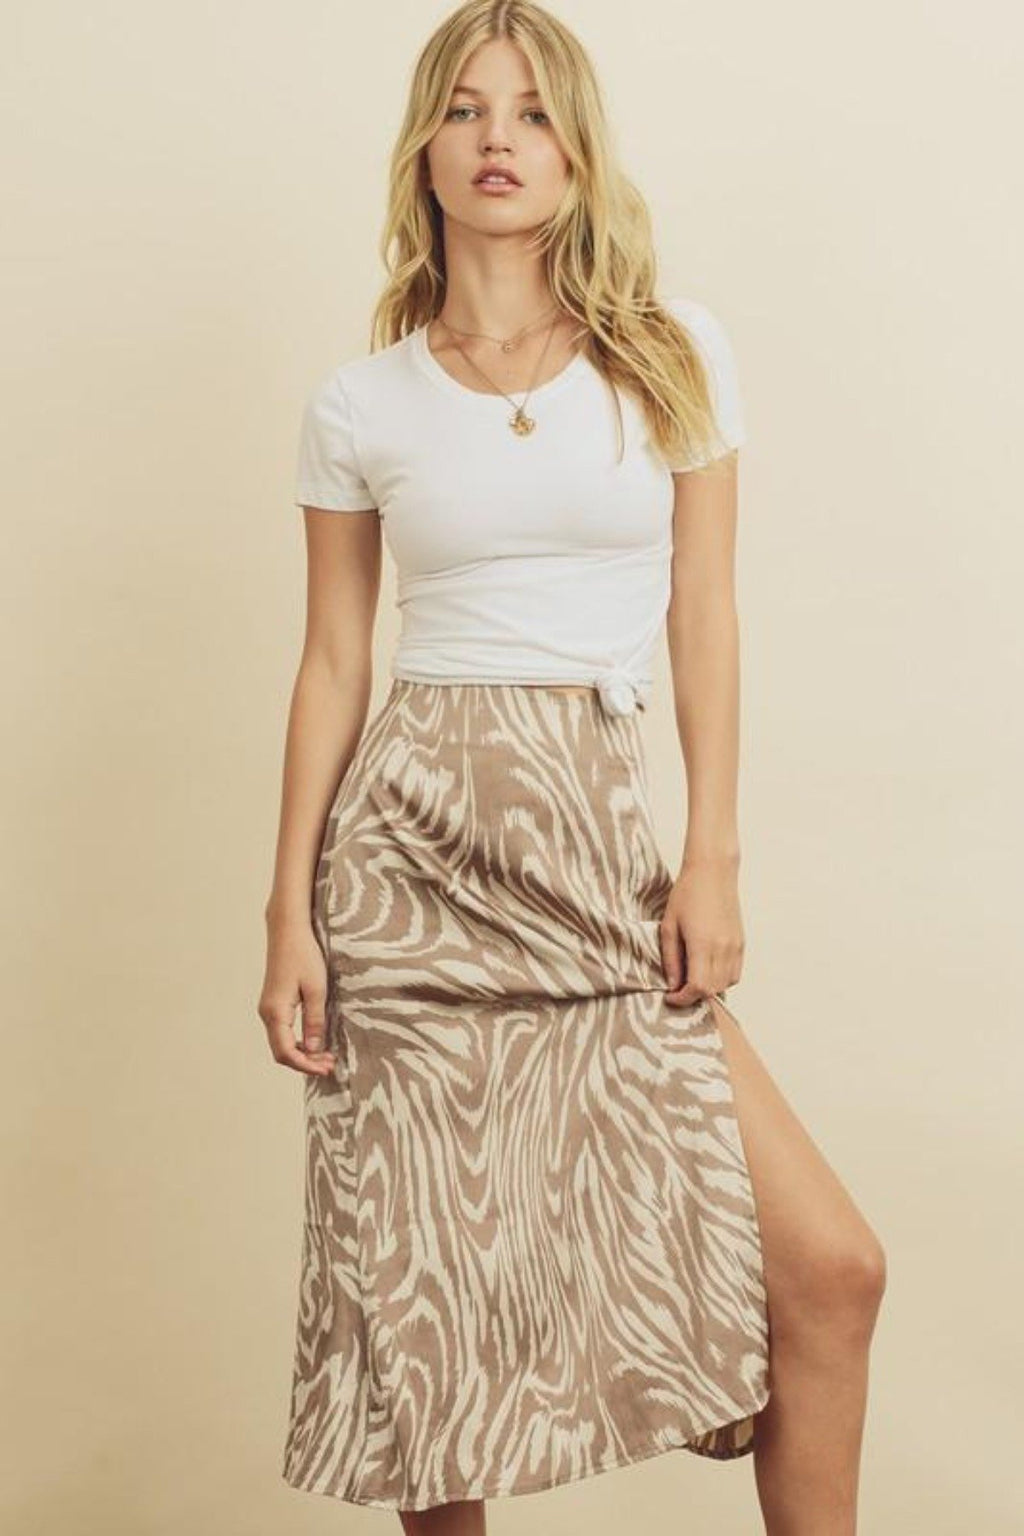 KEEP IT FIERCE TIGER PRINTED SLIP MIDI SKIRT - [jayden_p]